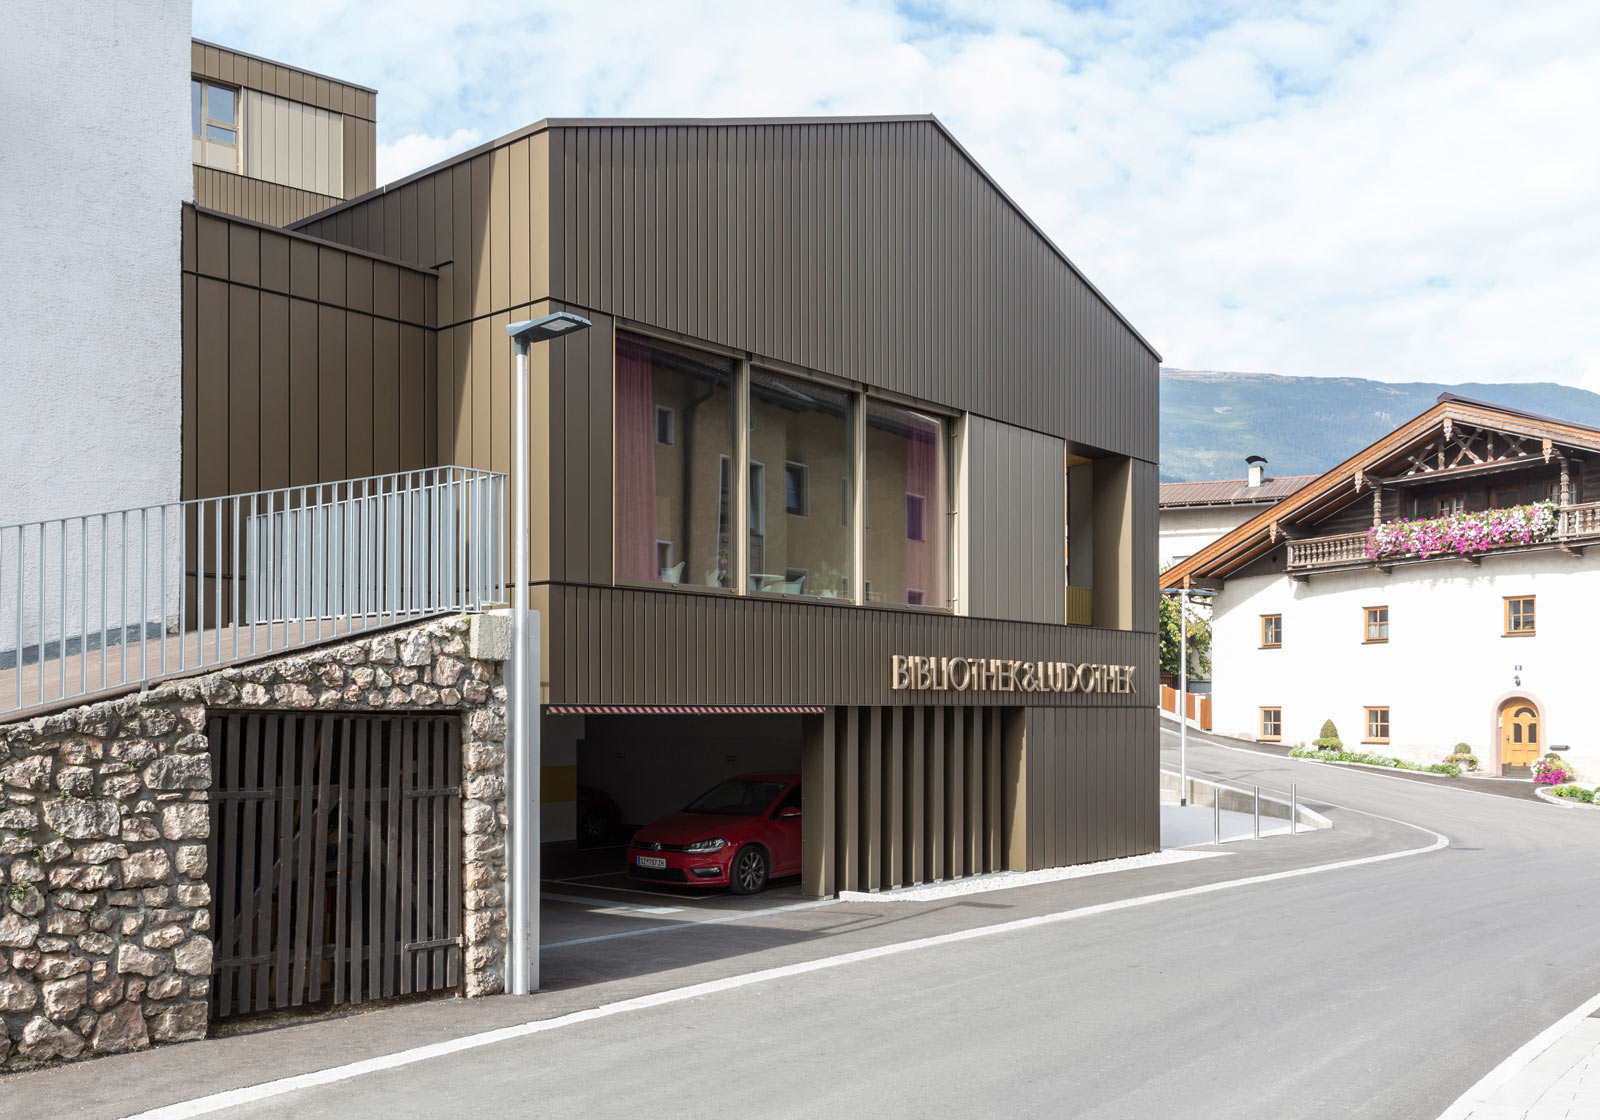 The new municipal offices slip smoothly into the traditional village structure. Photo: ATP/Rauschmeir